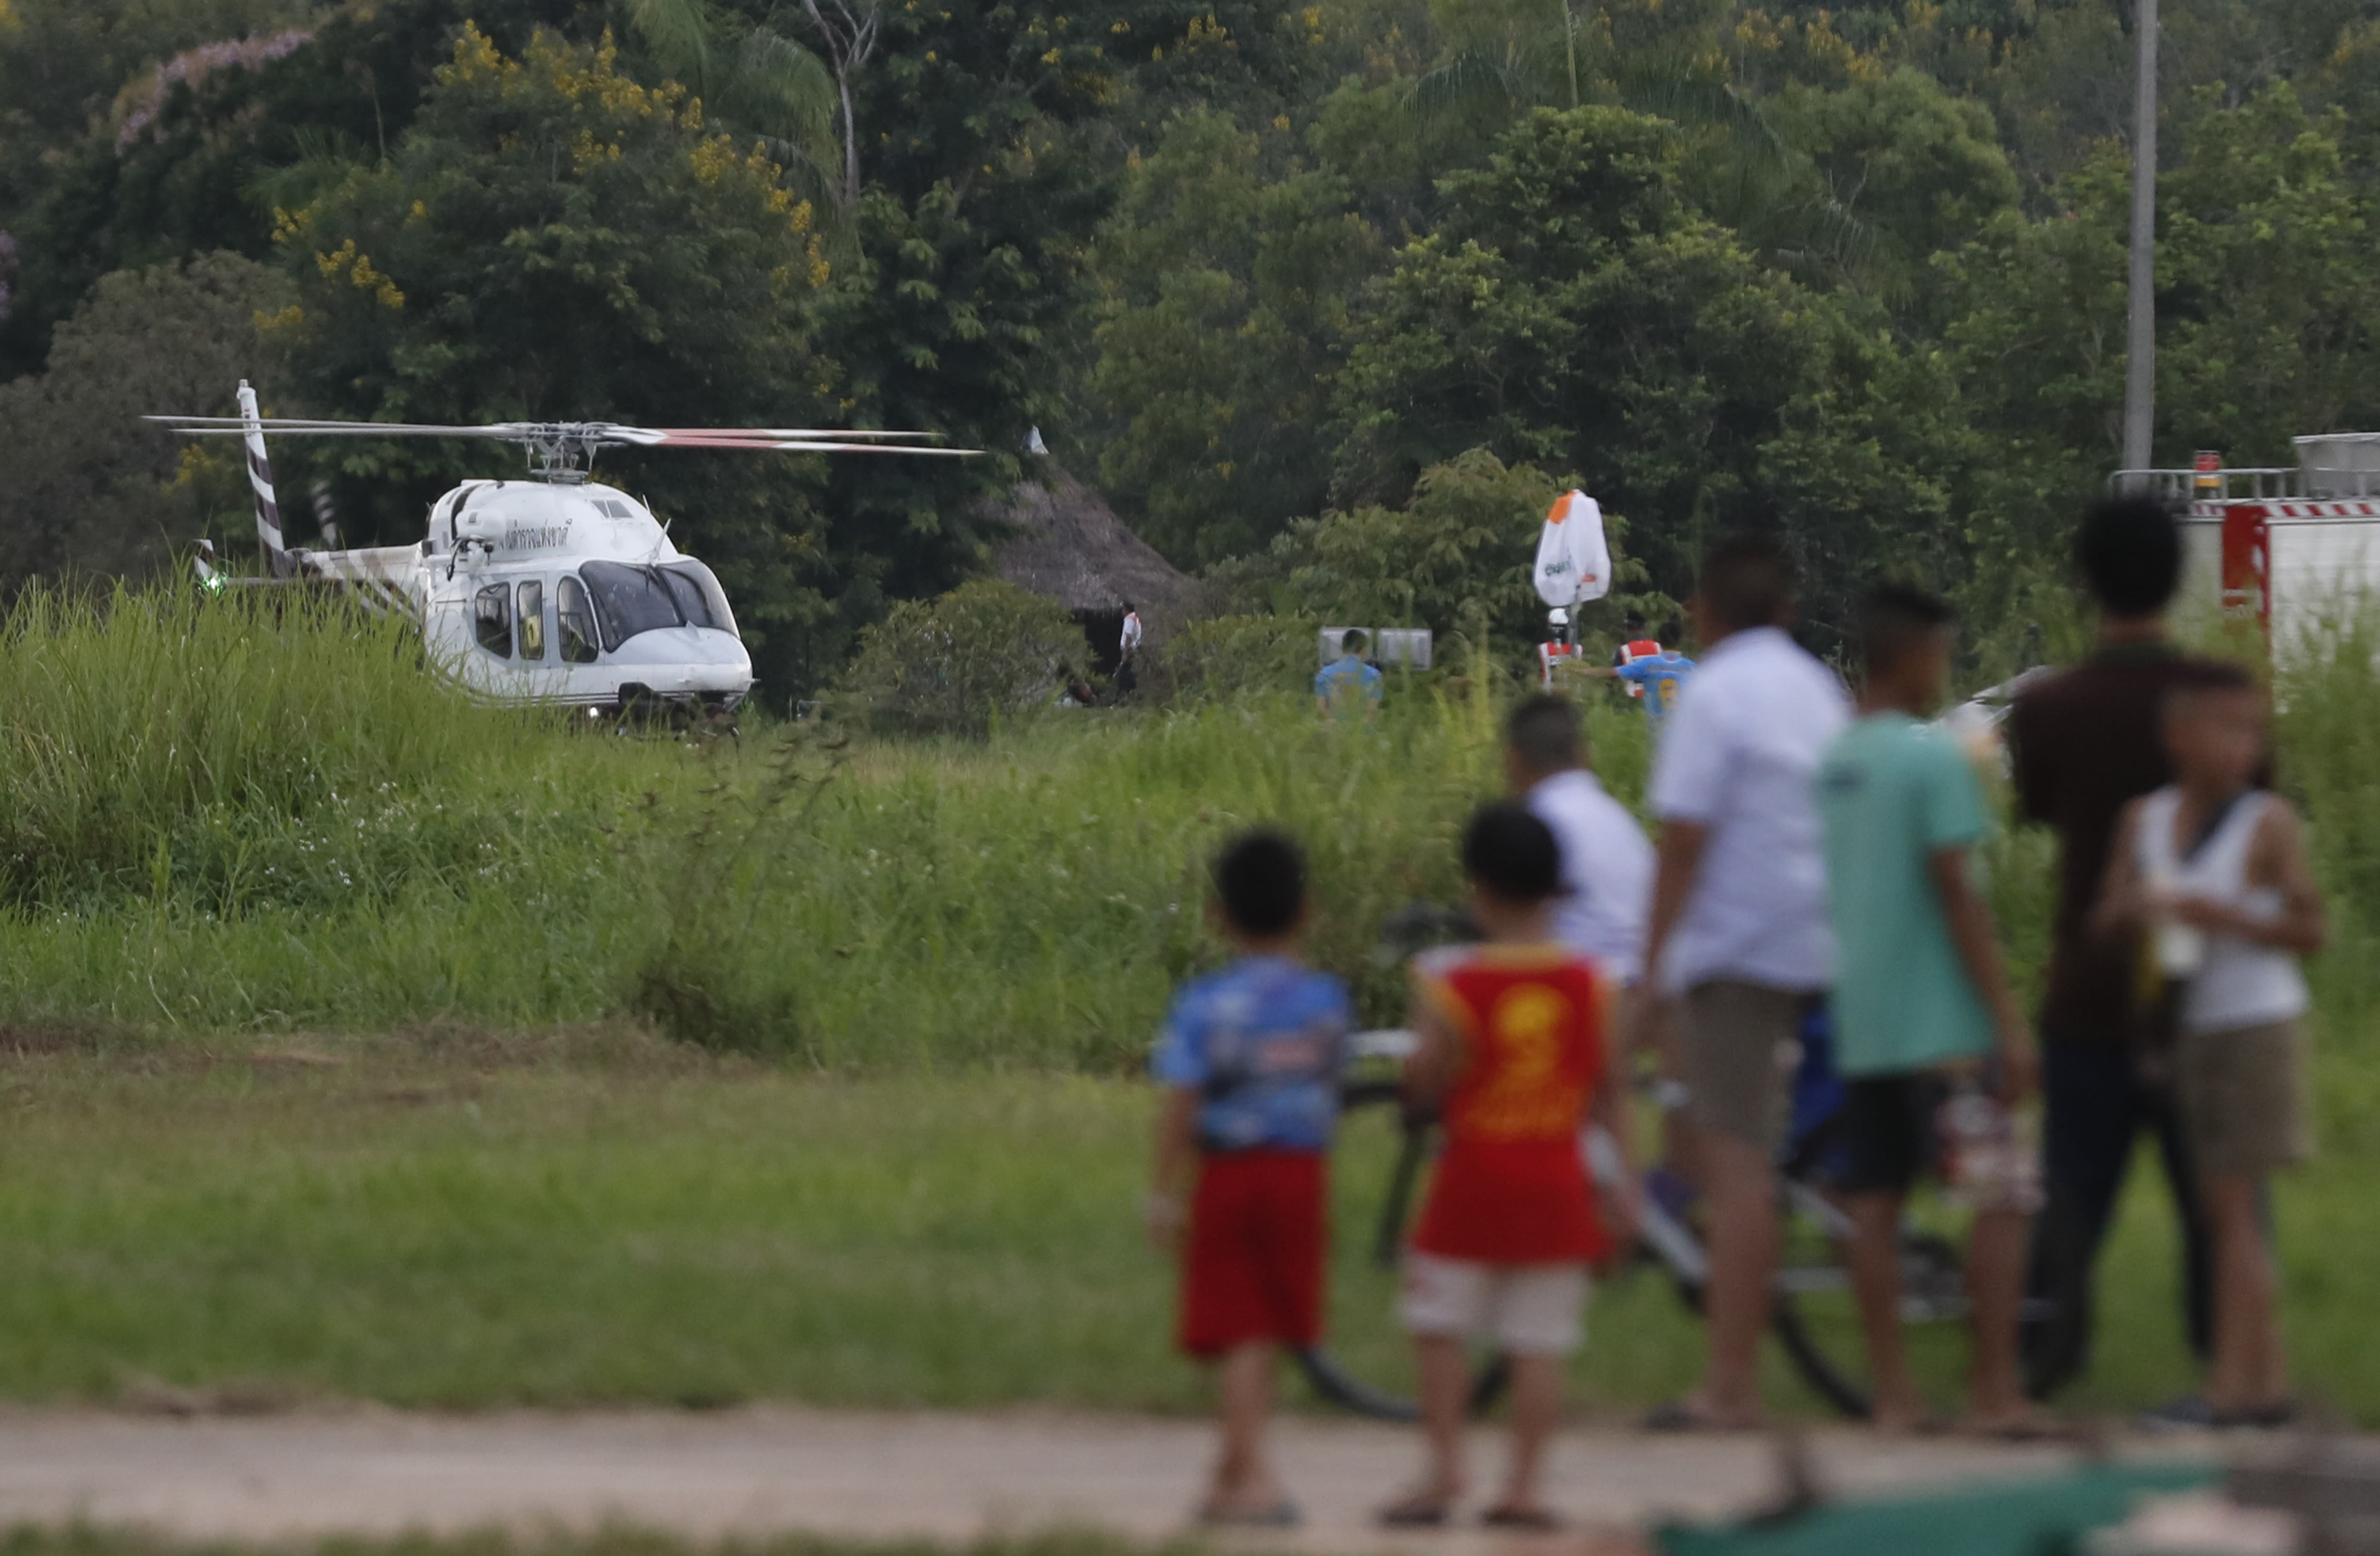 <p>A helicopter believed to be carrying one of the boys rescued from the flooded cave lands in Chiang Rai as divers continue to extract the remaining boys and their coach trapped at Tham Luang cave in the Mae Sai district in Chiang Rai province, northern Thailand, Tuesday, July 10, 2018. (Photo: Vincent Thian/AP) </p>